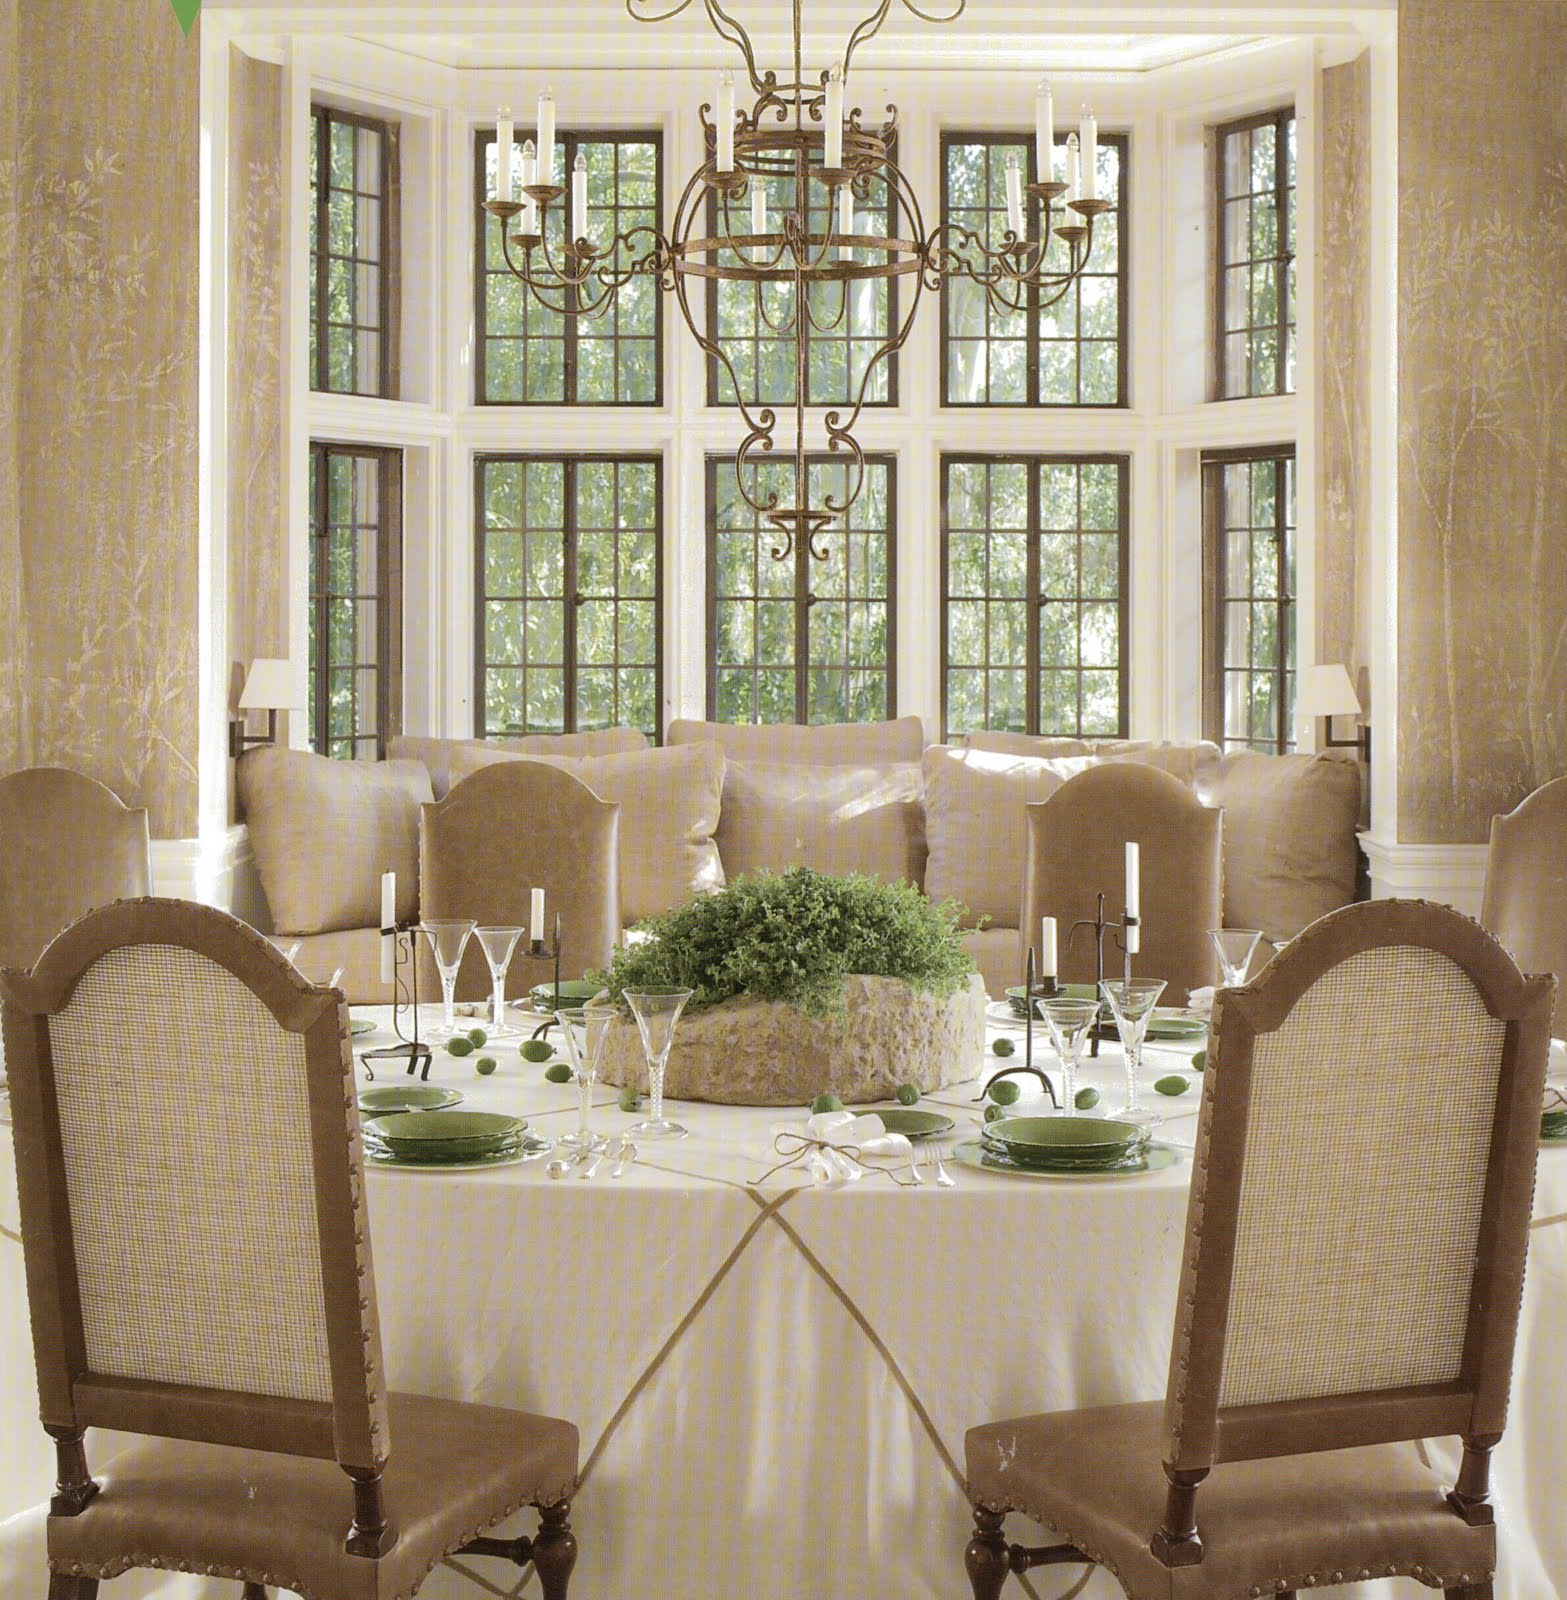 Dining Room Window: P.S. I Love This...: Ideas For Dining Room